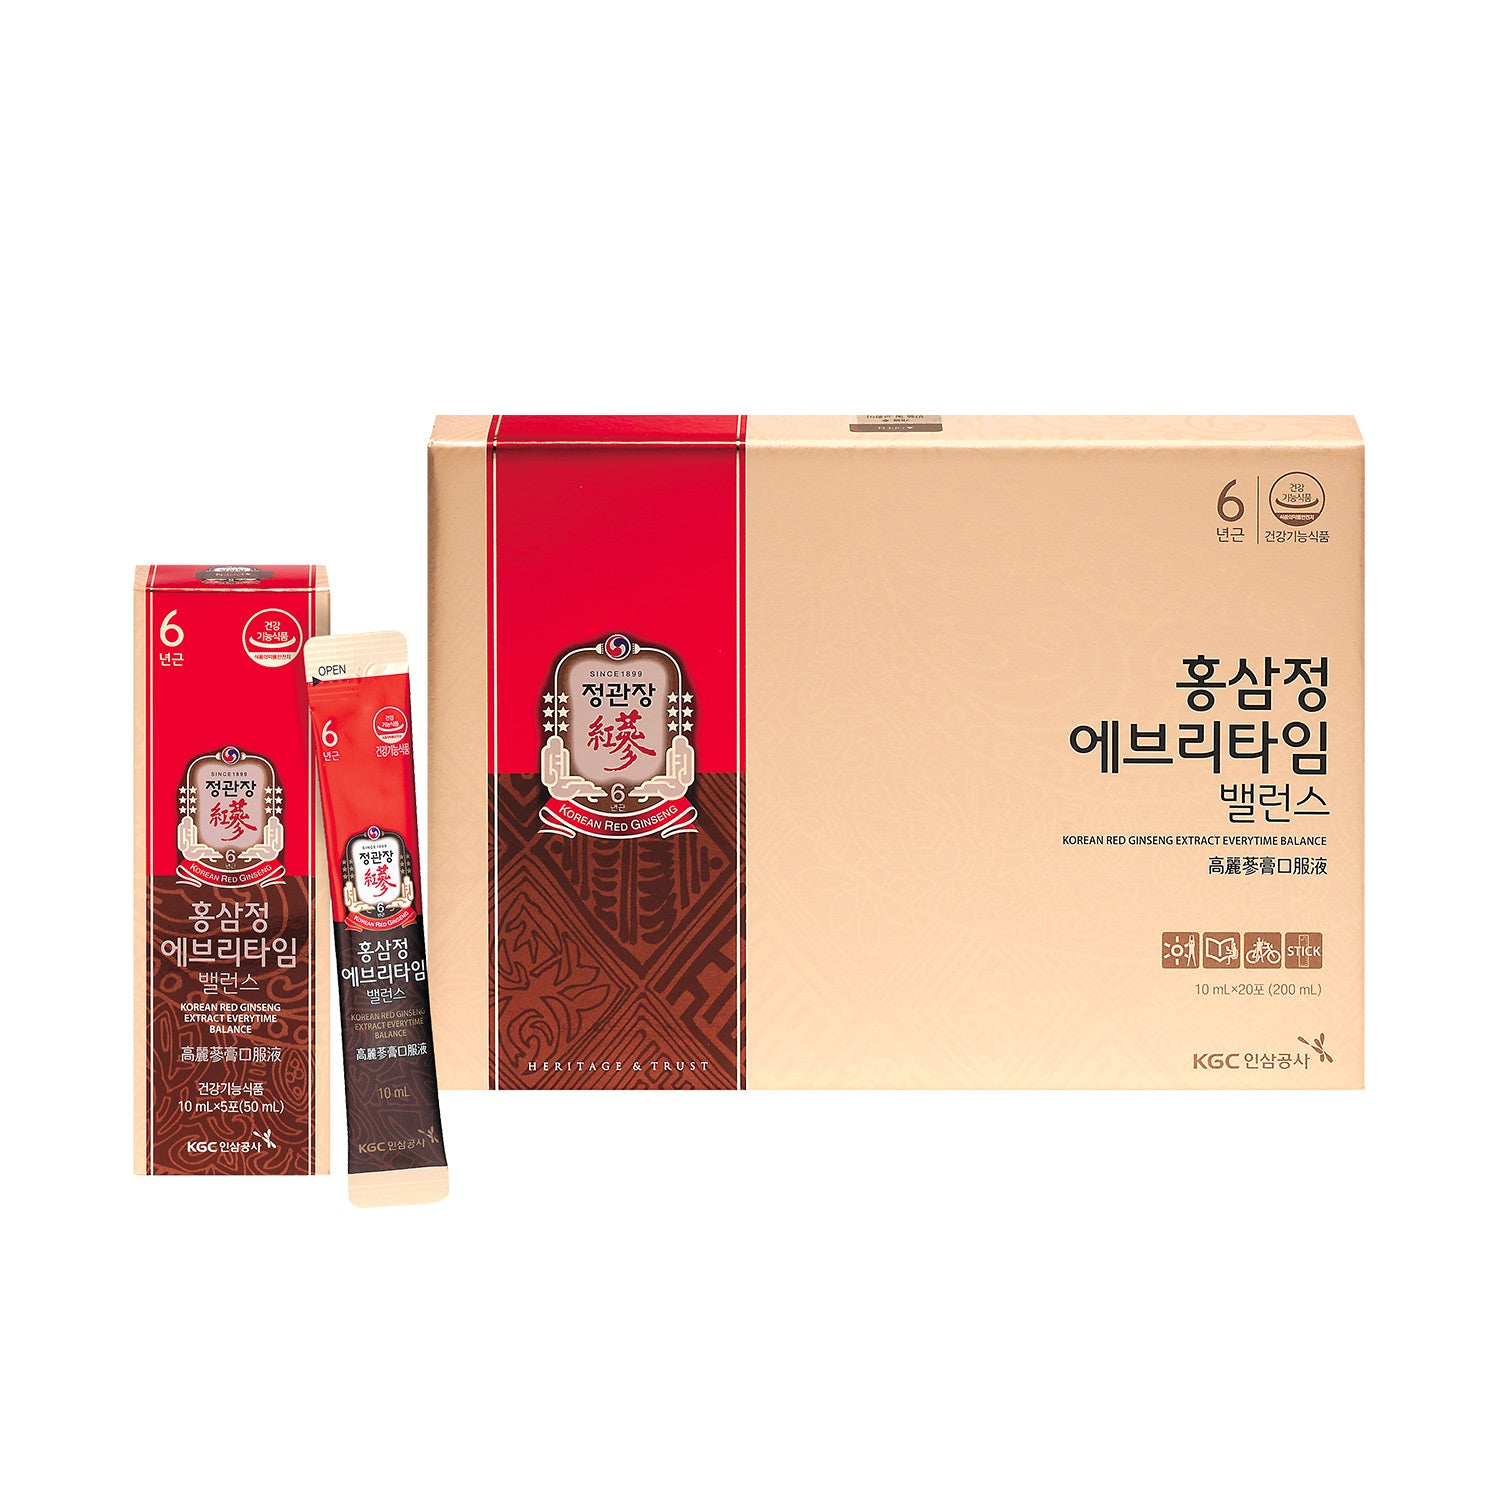 CKJ Korean Red Ginseng Extract Everytime Balance 20s [Bulk purchase of 8 boxes]